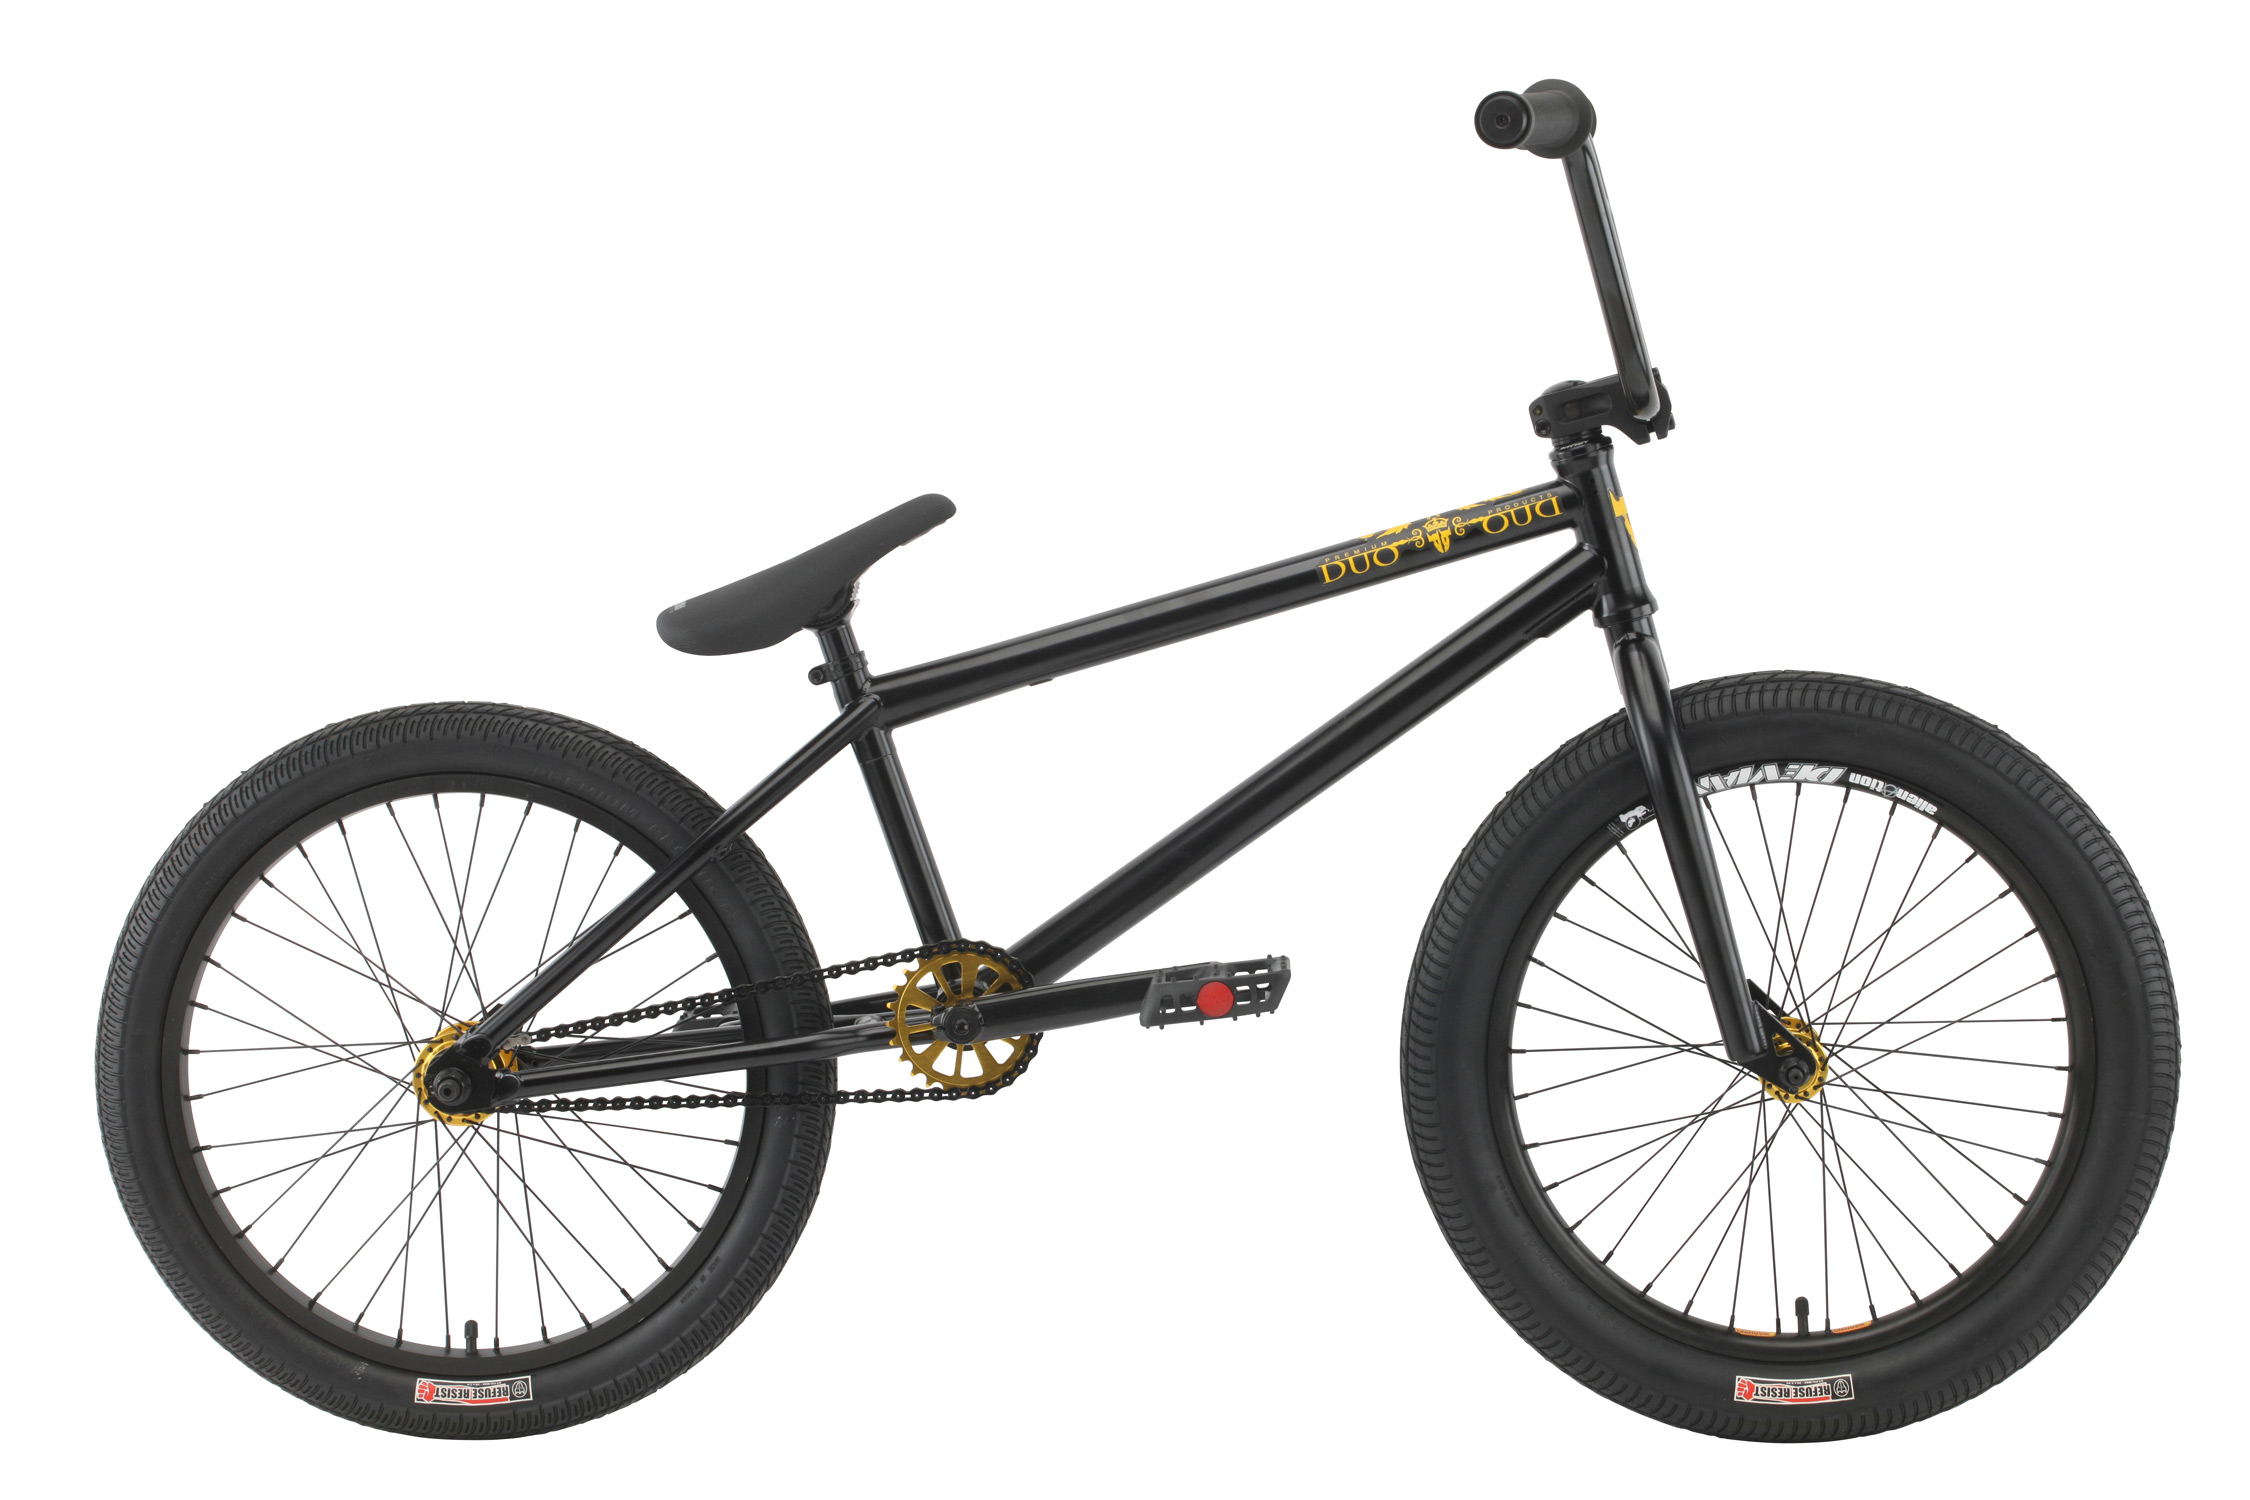 "BMX Key Features of the Premium Duo BMX Bike: Premium five-tubes chromoly frame with Mid BB and internal head tube Full chromoly forks with tapered legs Full chromoly bars 8"" (on 20.5"") or 8.25"" (on 21"") with alloy front load stem Three-piece chromoly 175mm 8-spline cranks with sealed Mid BB Premium padded Pivotal seat with forged pivotal post Premium Street tires; 2.25"" front, 2.0"" rear Odyssey Twisted plastic pedals WEIGHT 24.5lbs SIZING 20.5"", 21"" FRAME 5 tubes crmo w/welded seat clamp and removable brake mounts - 20.5"" or 21"" TT FORK 1 1/8"" Full Crmo- Threadless w/tapered legs CRANKS 3 pc. tubular Crmo 175mm w/sealed MID BB PEDALS Odyssey plastic pedals TIRES Premium Street Tires, 20x2.25 F / 20x2.0 R WHEELS Alienation 36h Deviant dw front/36h Black Sheep dw rear, 36H alloy sealed 3/8"" Frt, 36H Alloy sealed cassette rear 14mm w/9T driver ROTOR N/A Straight Cable GRIPS Premium Counterfeit BARS Full Crmo - 8"" rise w/20.5"" frame, 8.25"" rise w/21"" frame SEAT Premium slim padded Pivotal seat with Pivotal post PEGS N/A - $413.95"